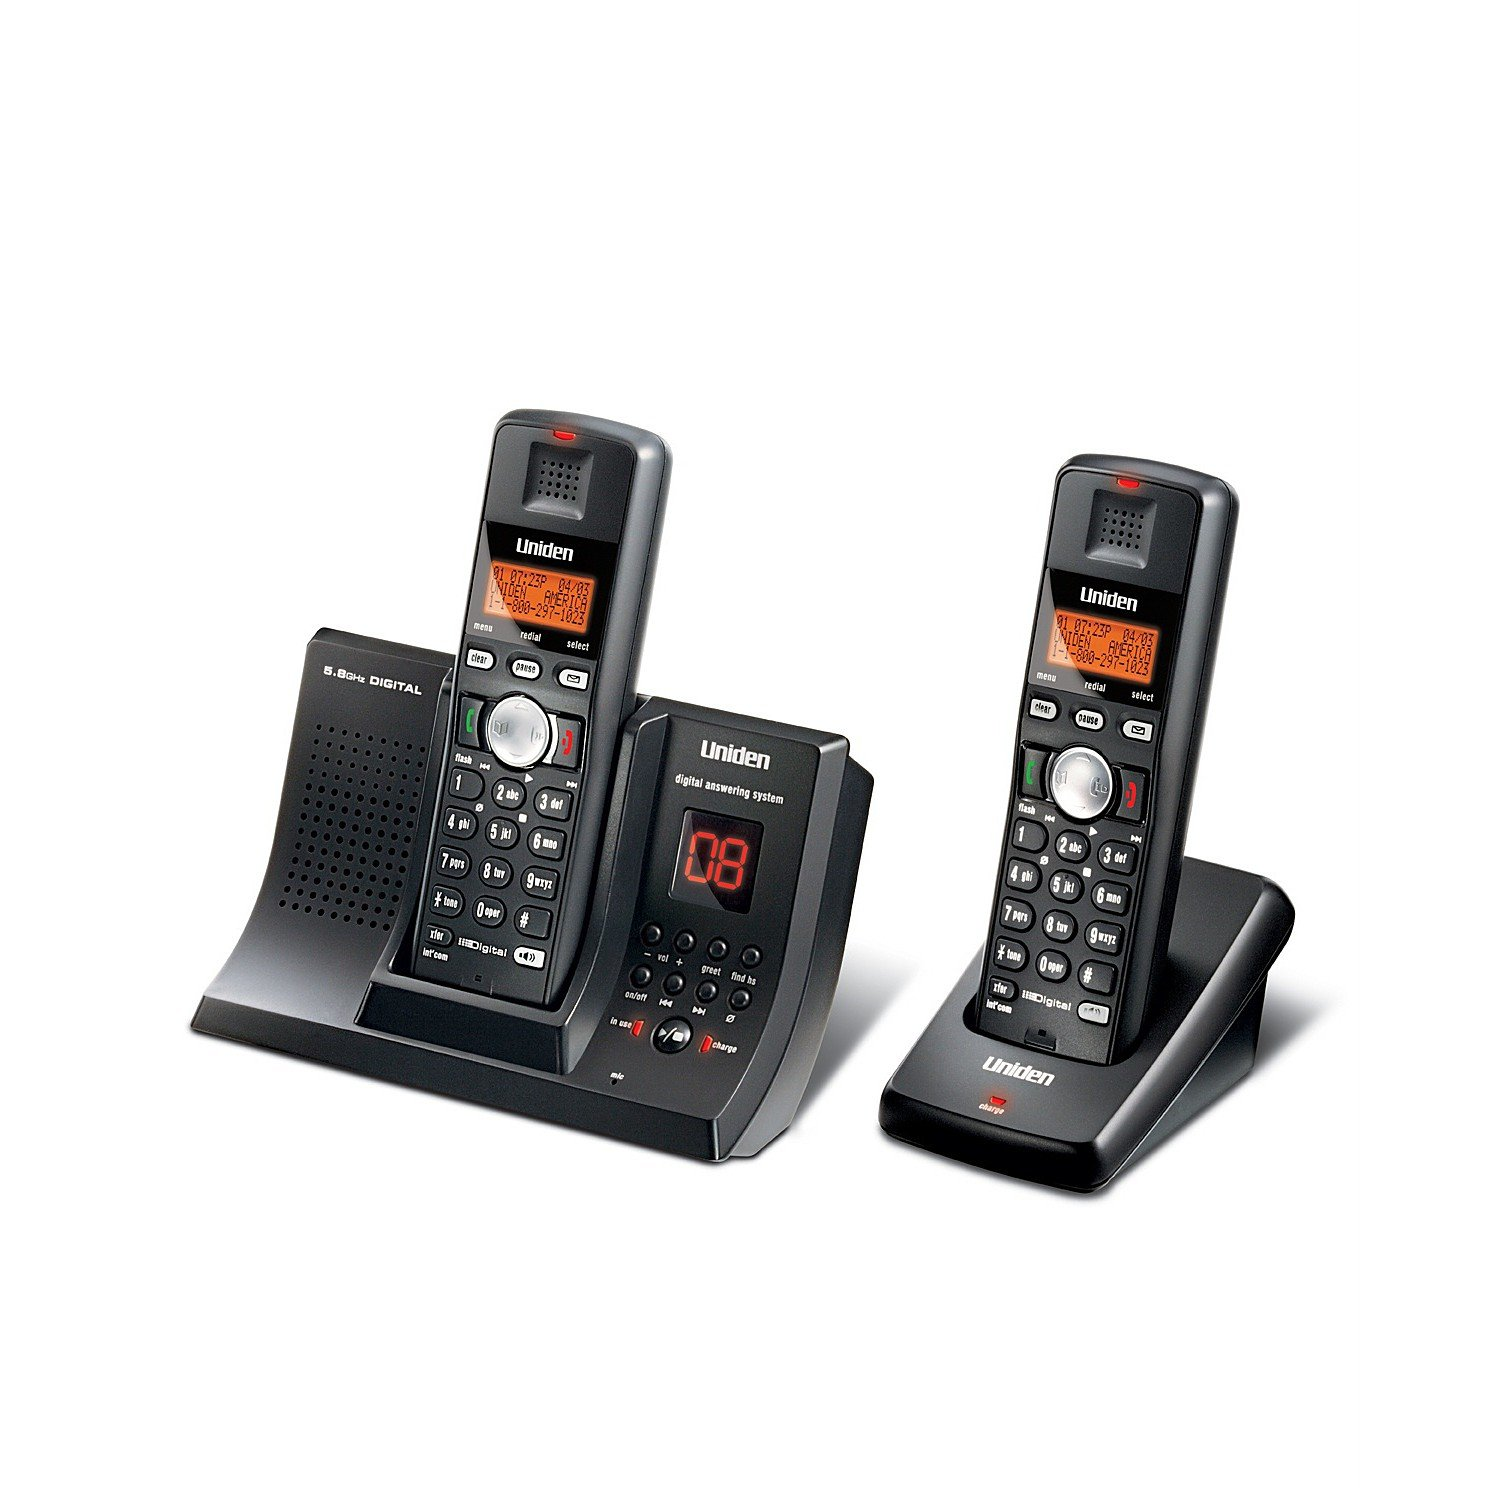 Amazon.com : Uniden Tru9280-2 5.8 Ghz Dual Handset Cordless Phone System  With Answering System & Call Waiting Caller Id : Cordless Telephones :  Electronics